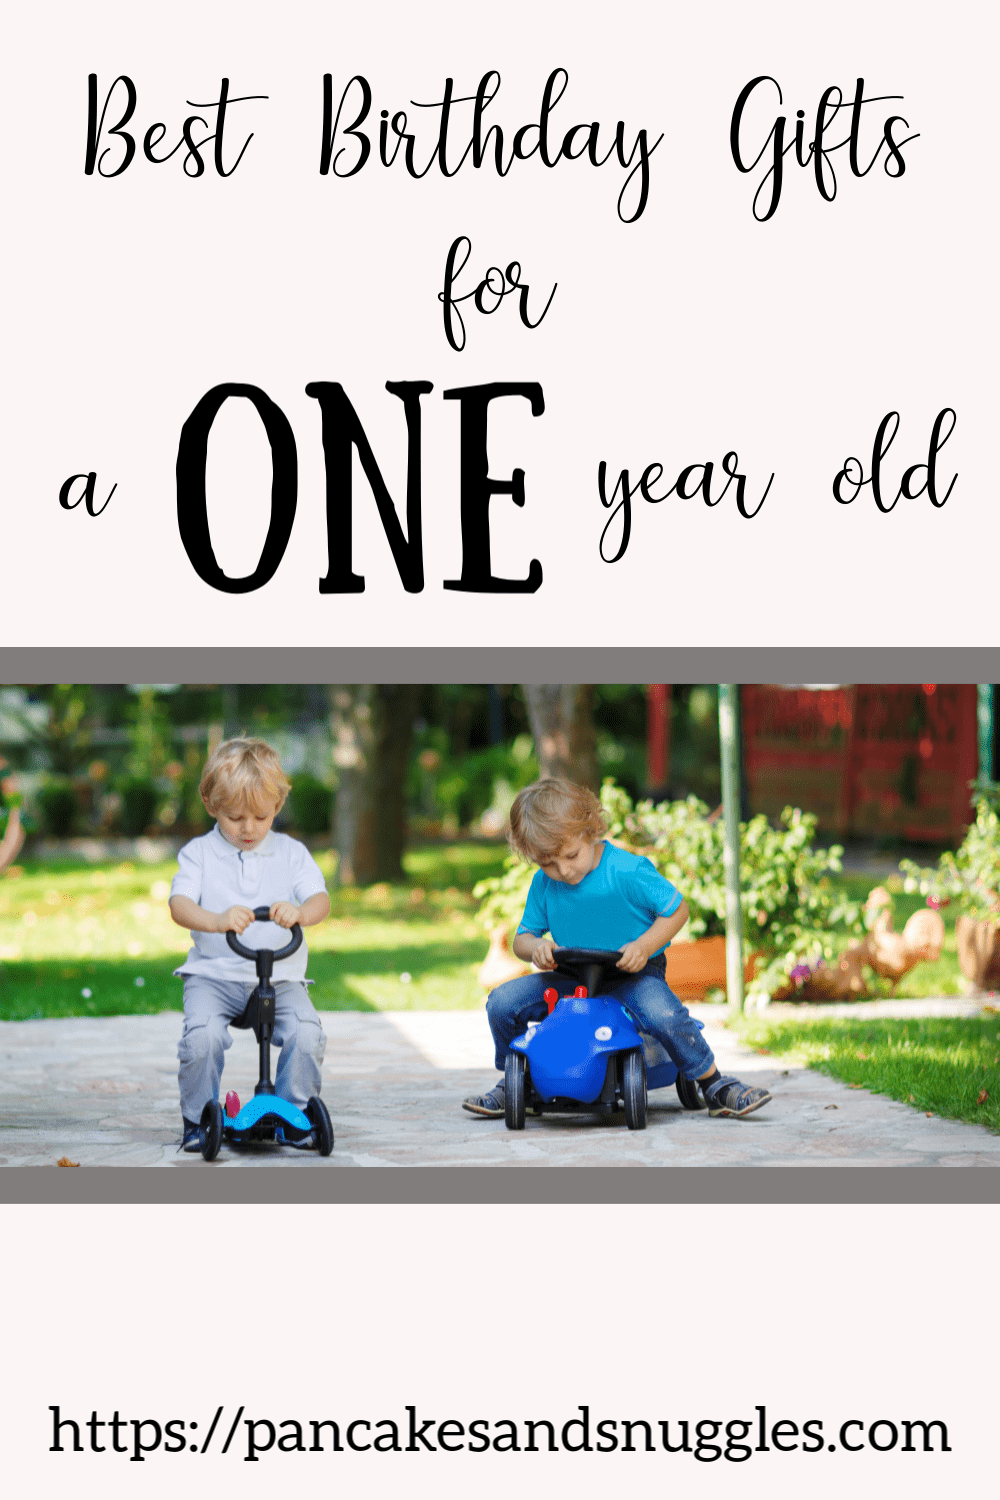 Two Toddlers Riding Push Cars